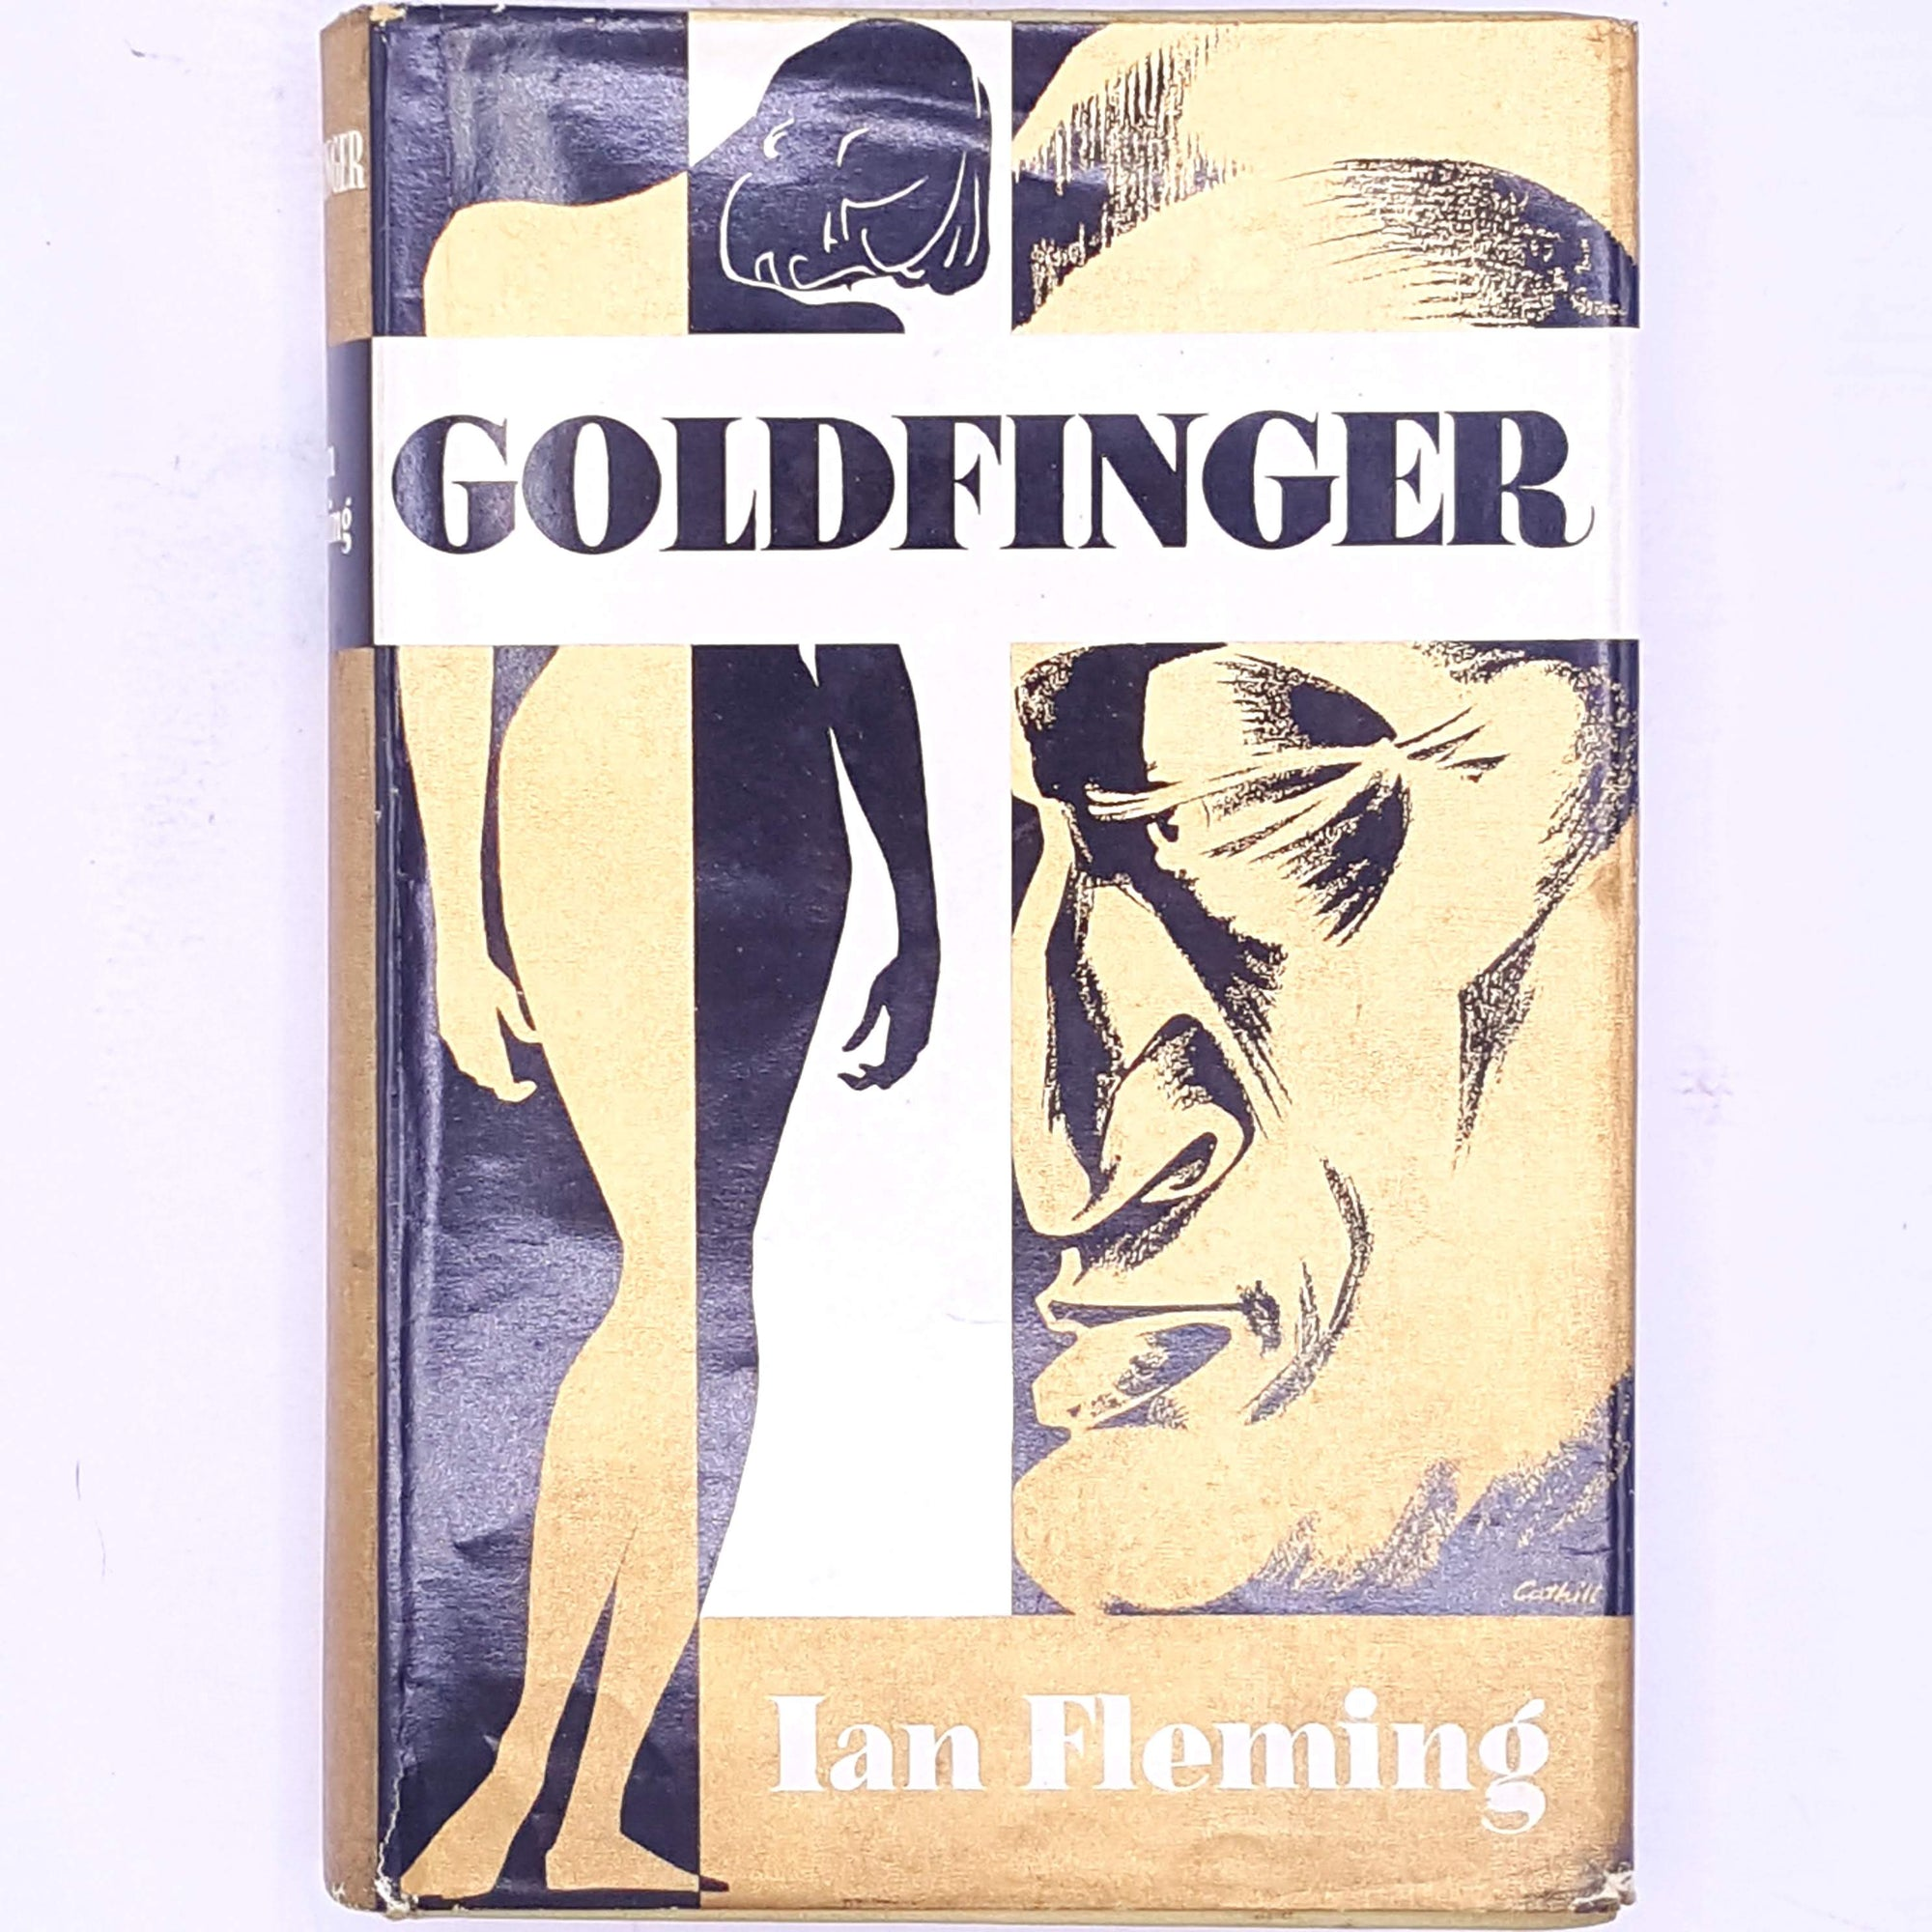 Ian Flemings Goldfinger, A James Bond Story